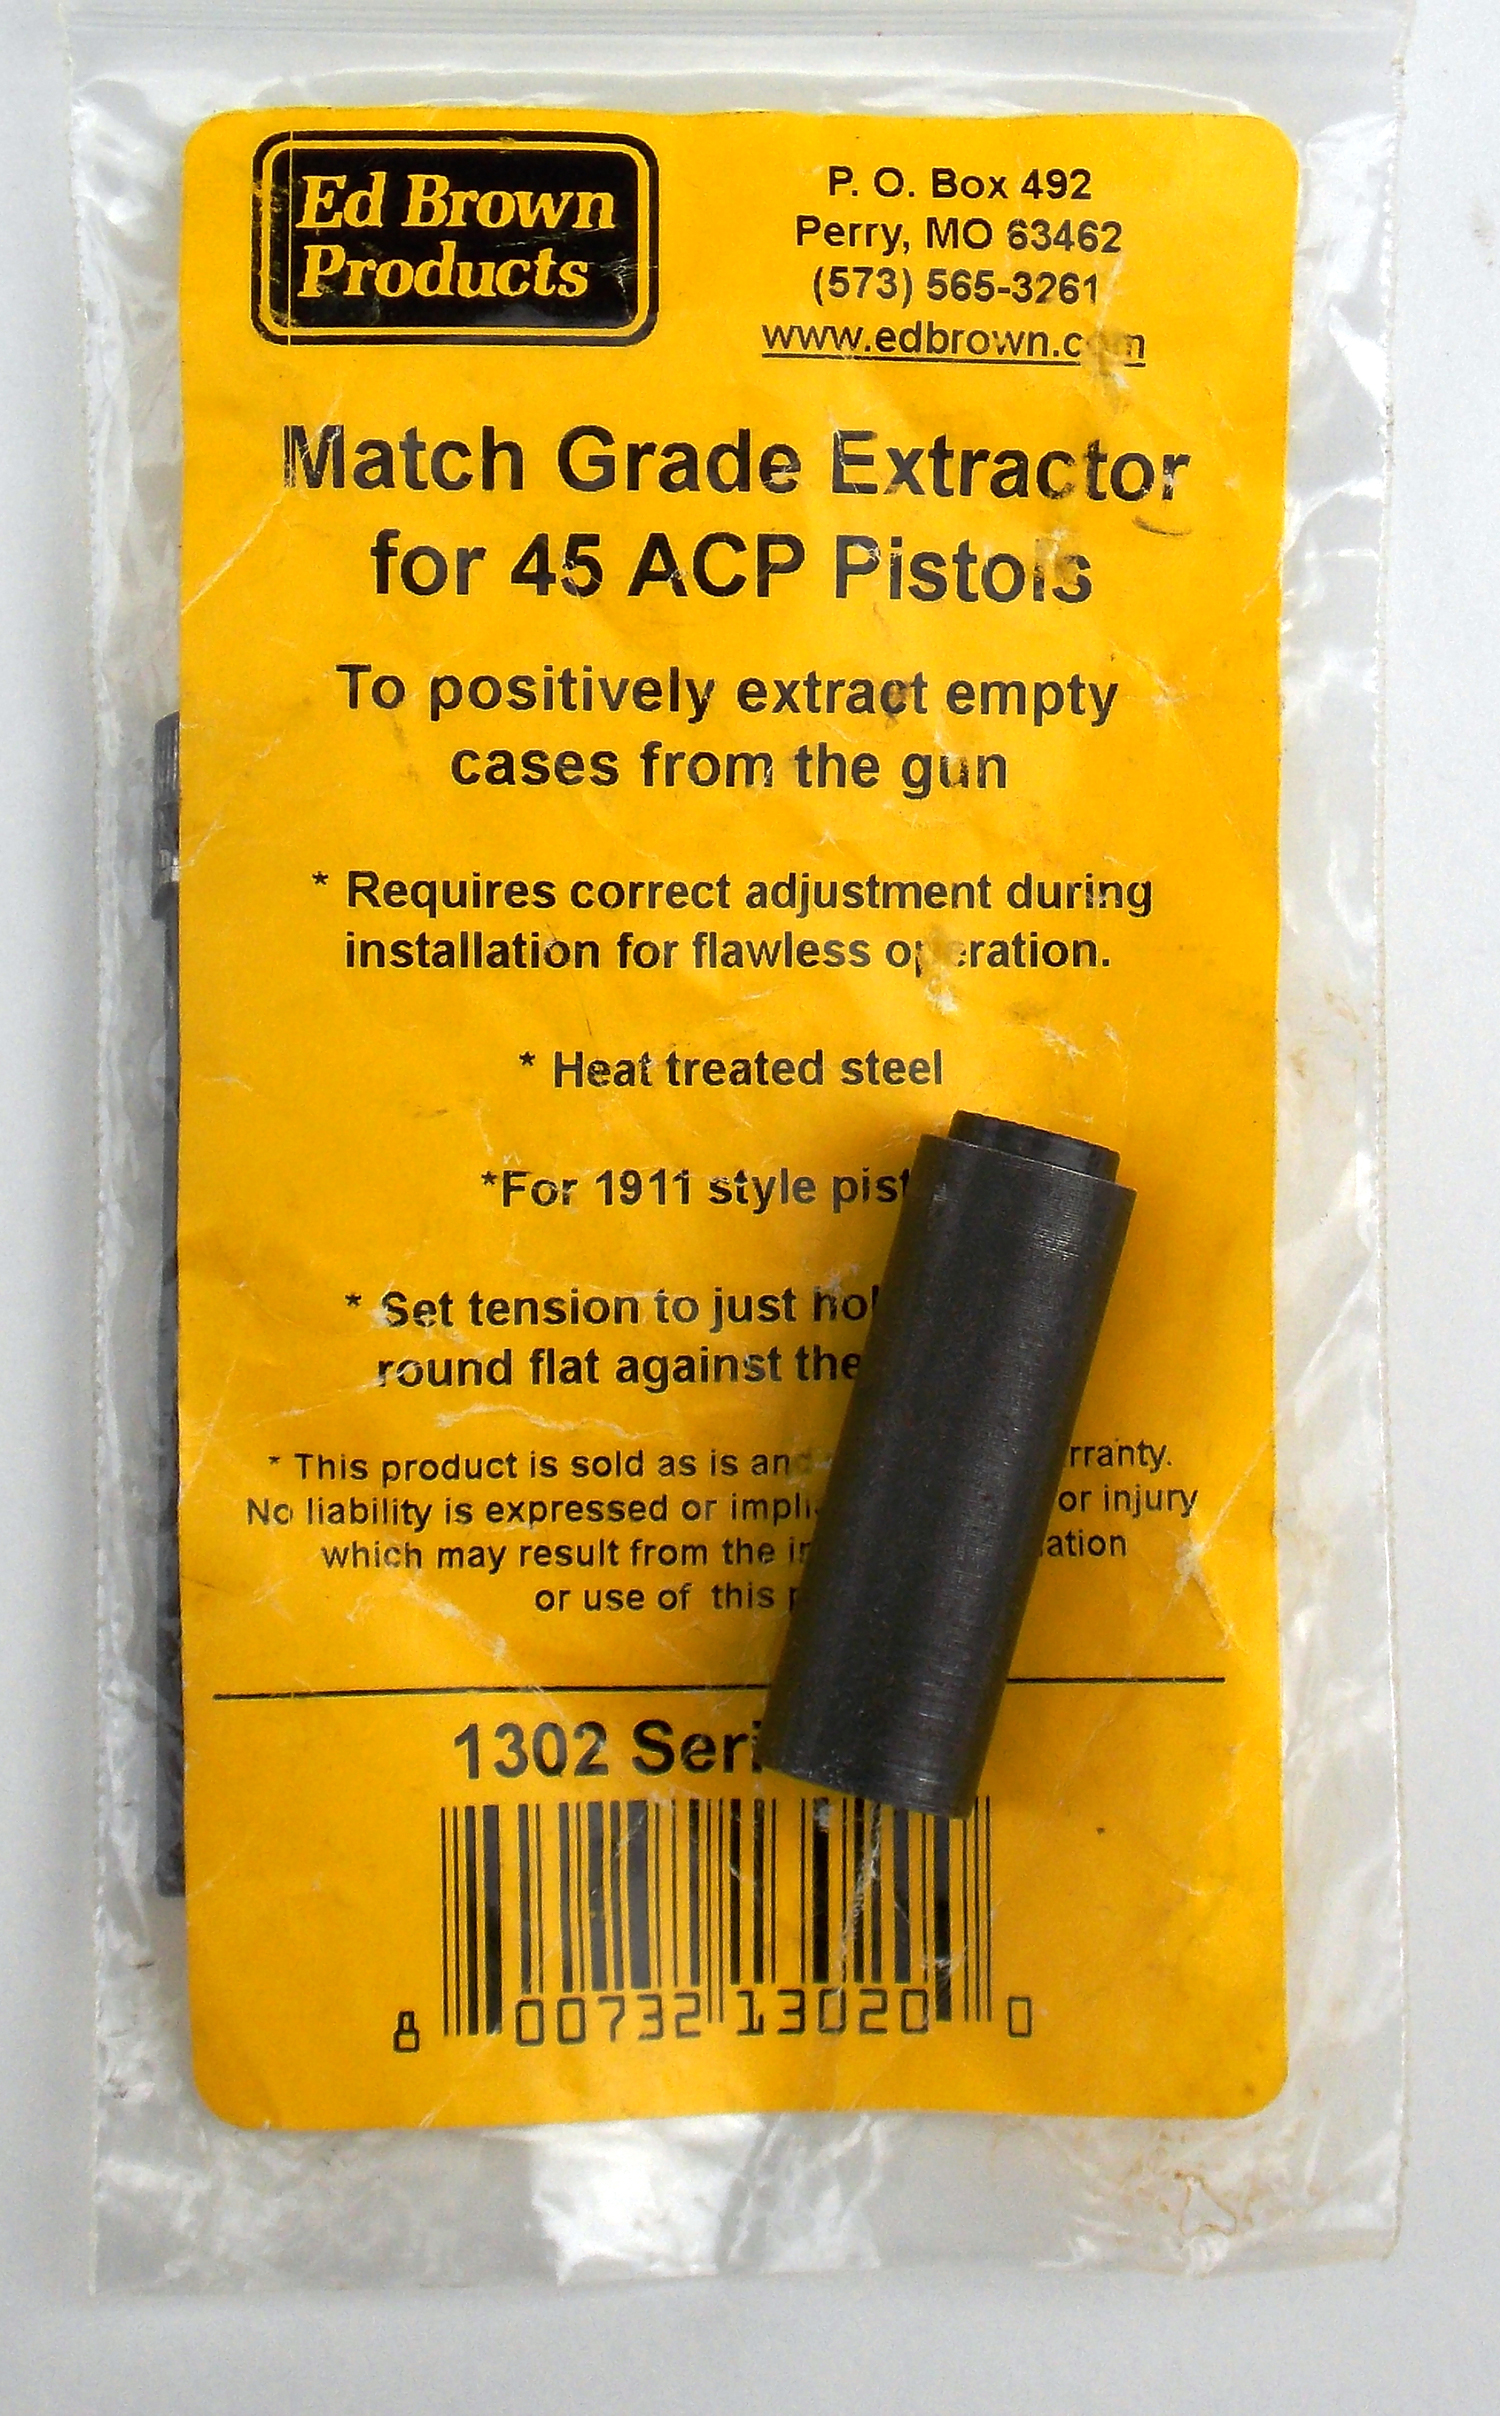 Match grade extractor for .45 ACP pistol